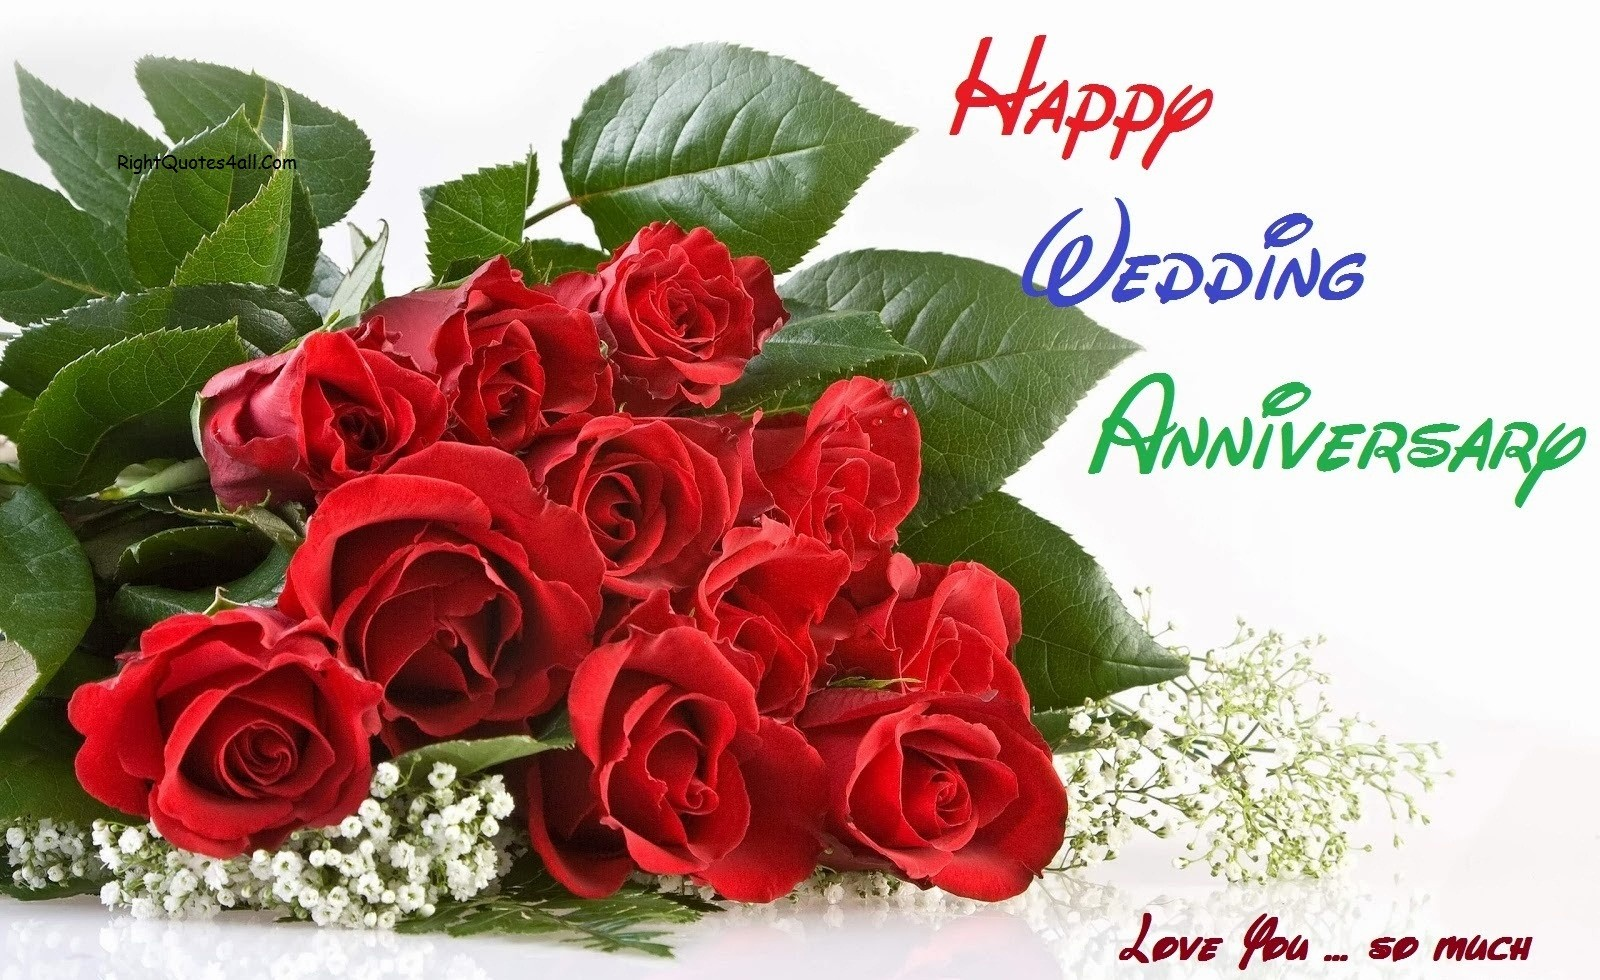 Happy Marriage Anniversary Wishes For Brother